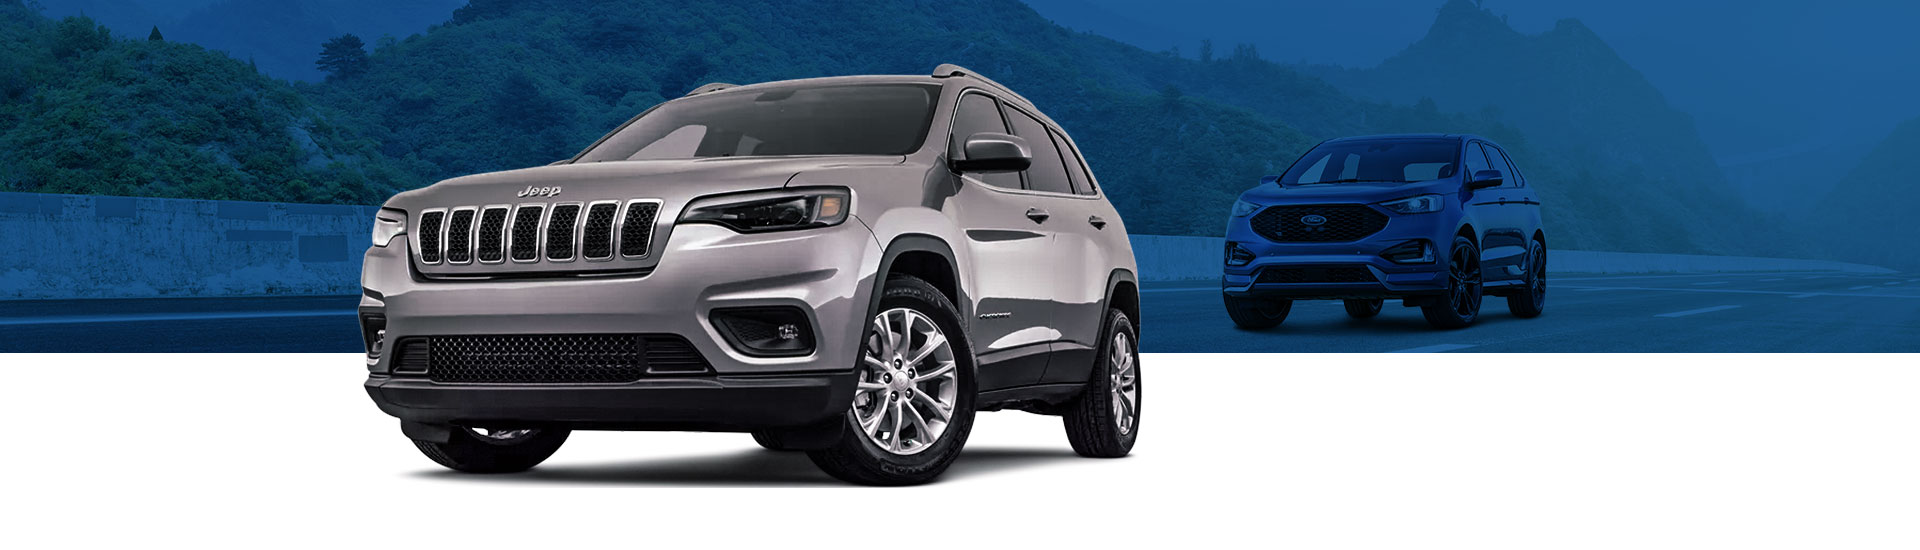 Jeep Cherokee Vs. Ford Edge